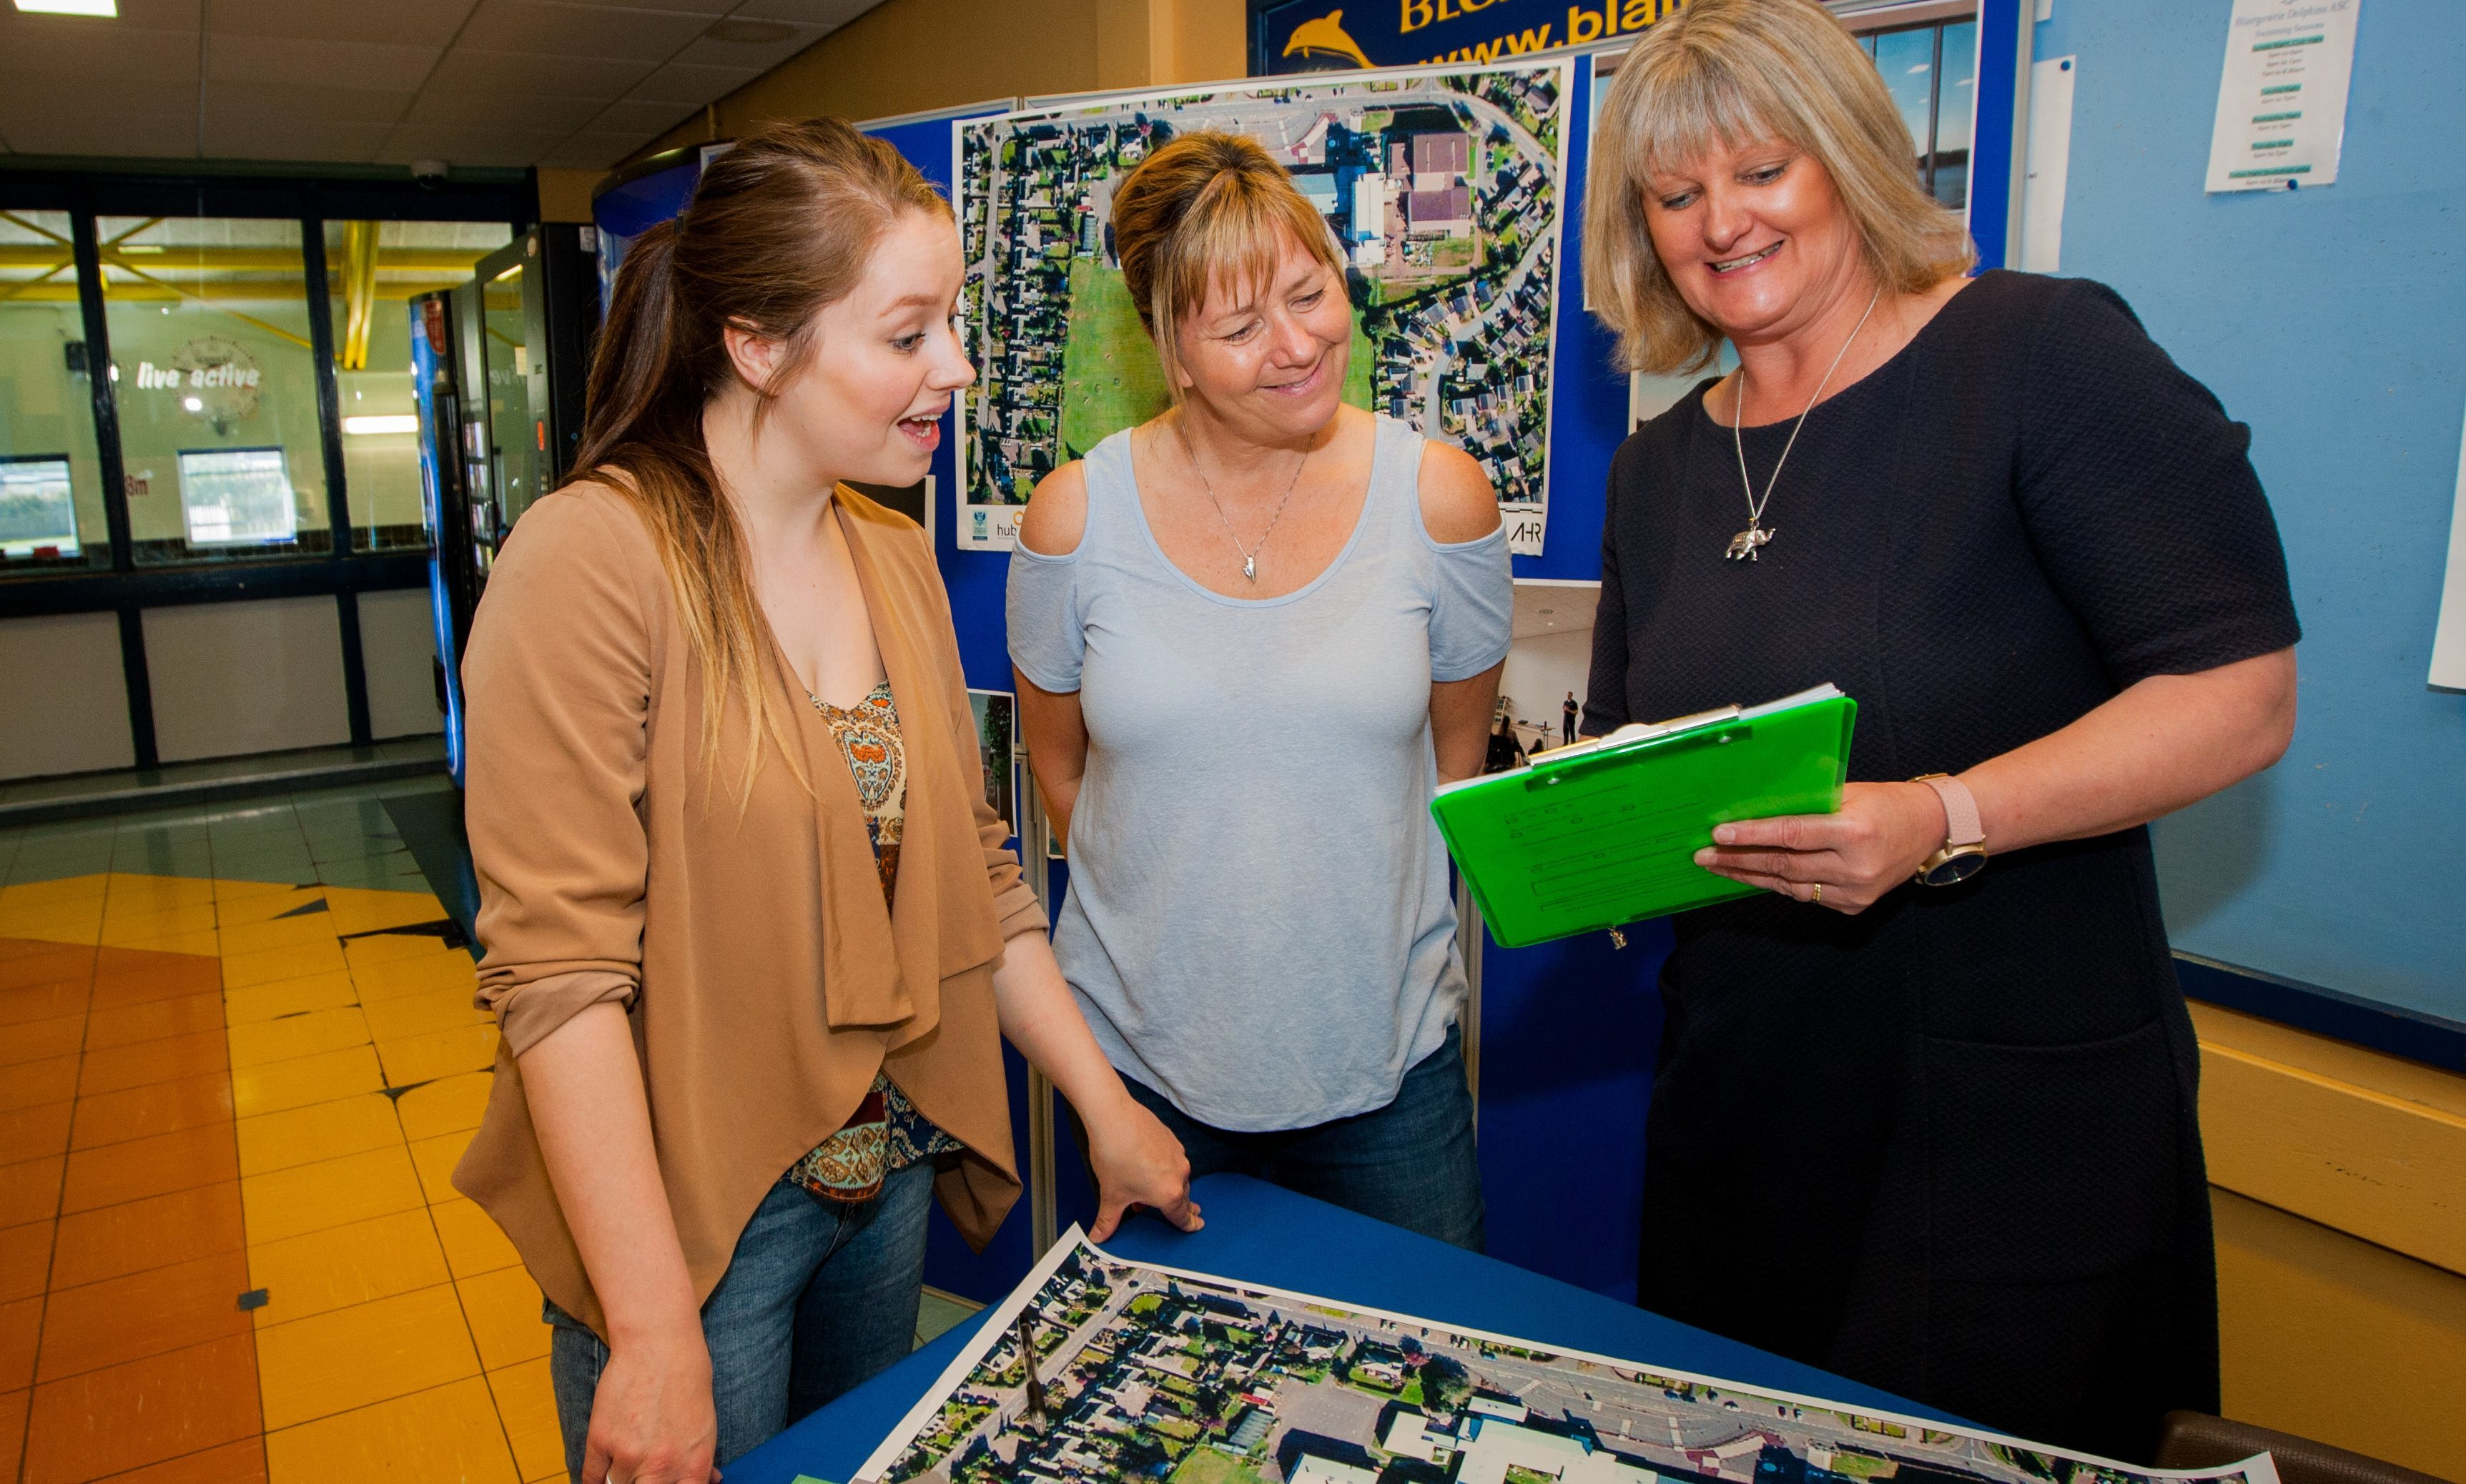 An earlier consultation session with consultant Penny Lochhead, alongside locals Jenni McGregor (left) and her mum Pauline McGregor (centre).